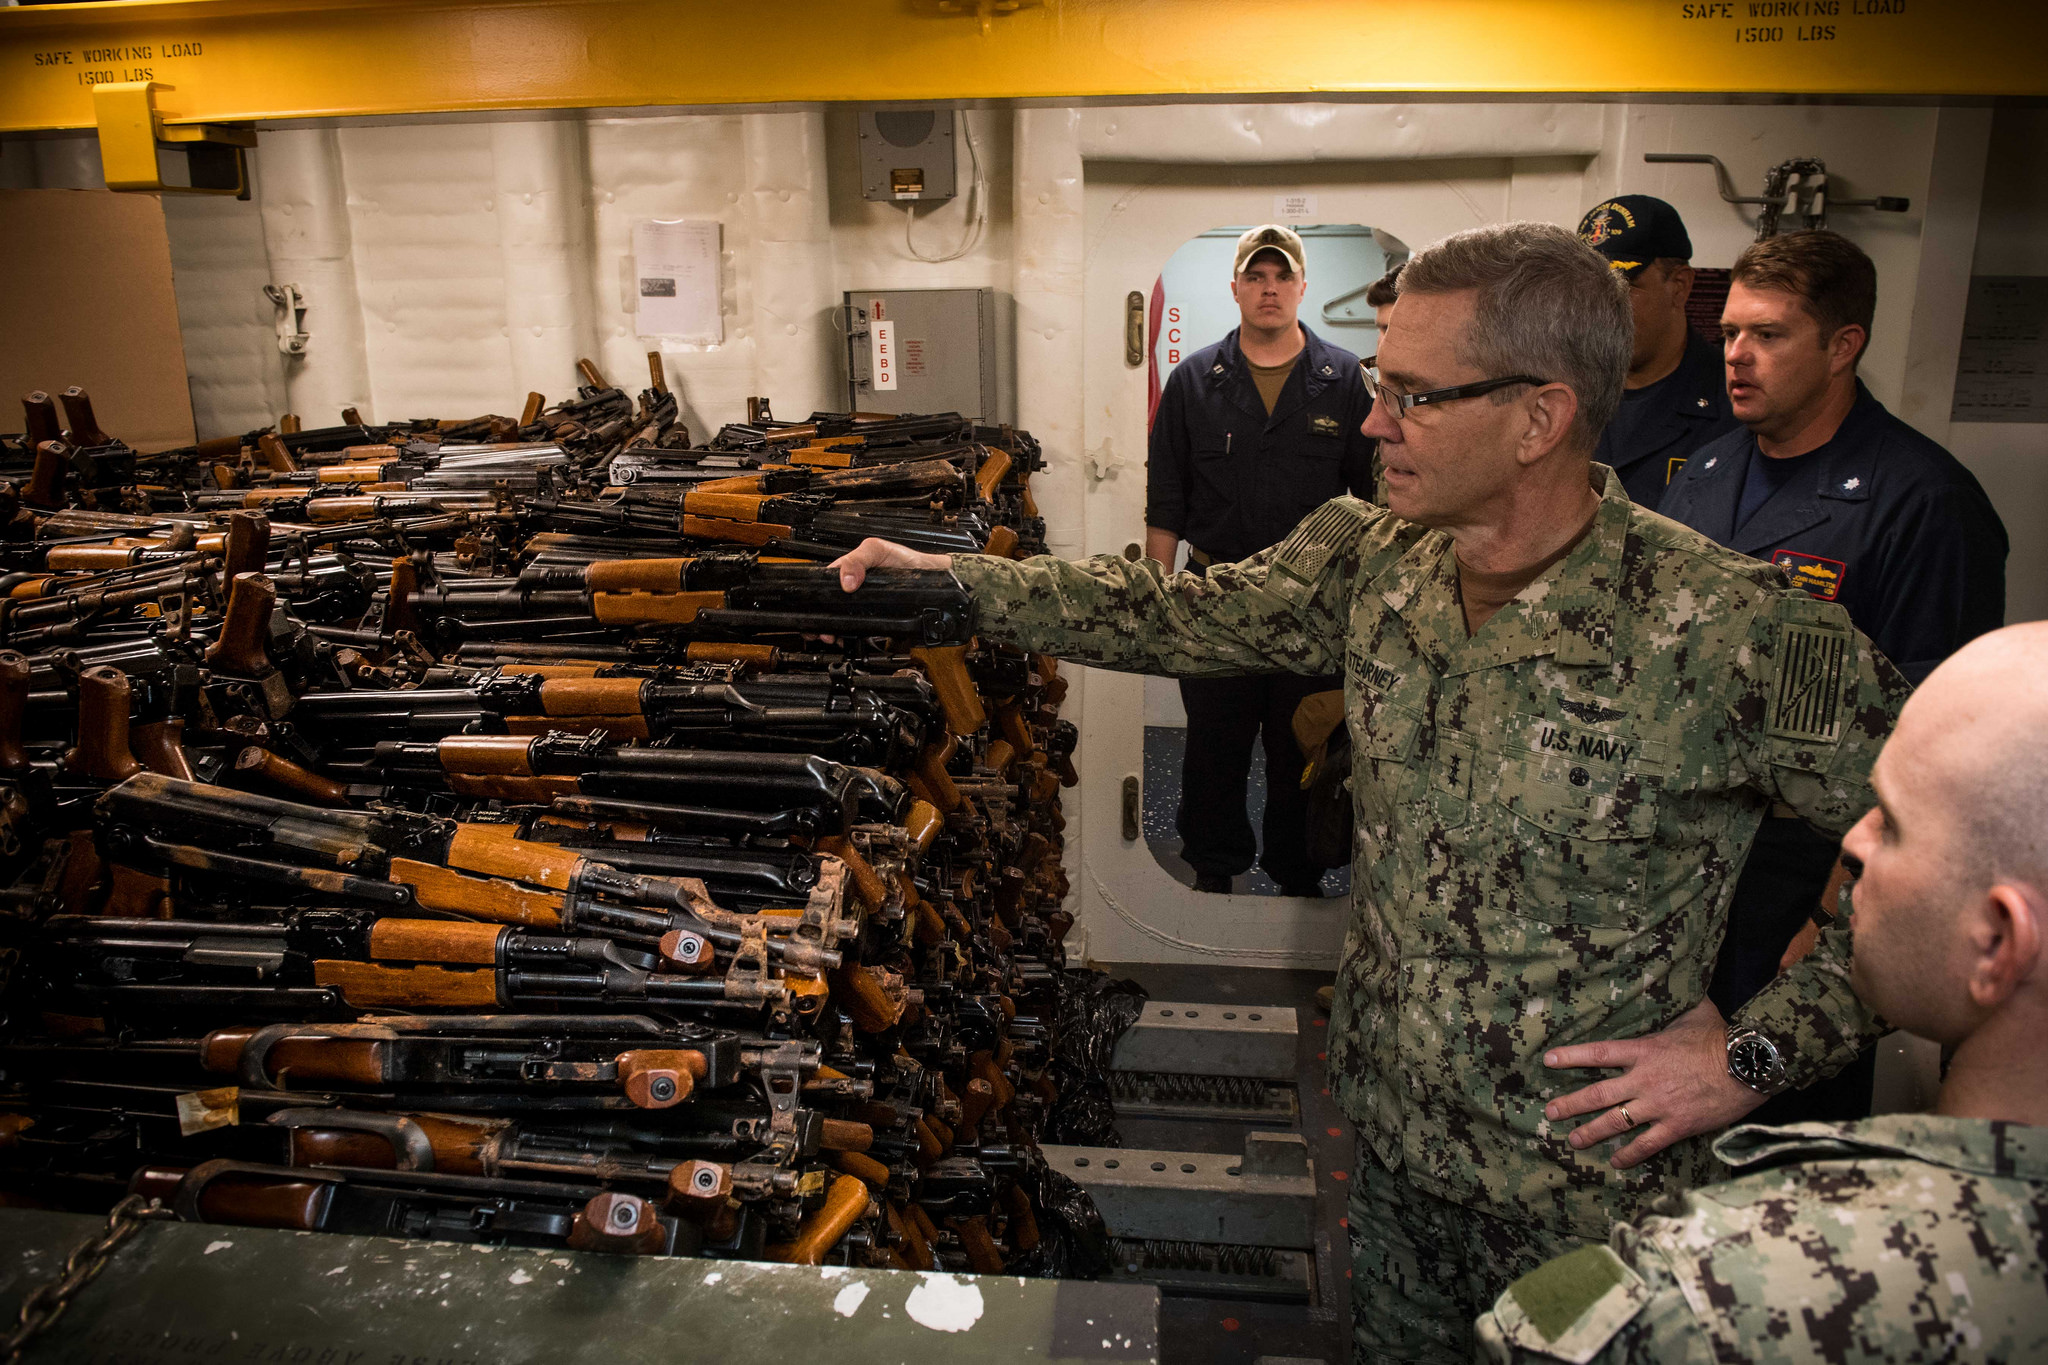 Vice Adm. Scott Stearney, commander of U.S. Naval Forces Central Command, U.S. 5th Fleet and Combined Maritime Forces, looks at a cache of over 2,500 AK-47 automatic rifles seized during maritime security operations aboard the guided-missile destroyer USS Jason Dunham (DDG 109) on Oct. 24, 2018, in Manama, Bahrain. (MC3Jonathan Clay/Navy)